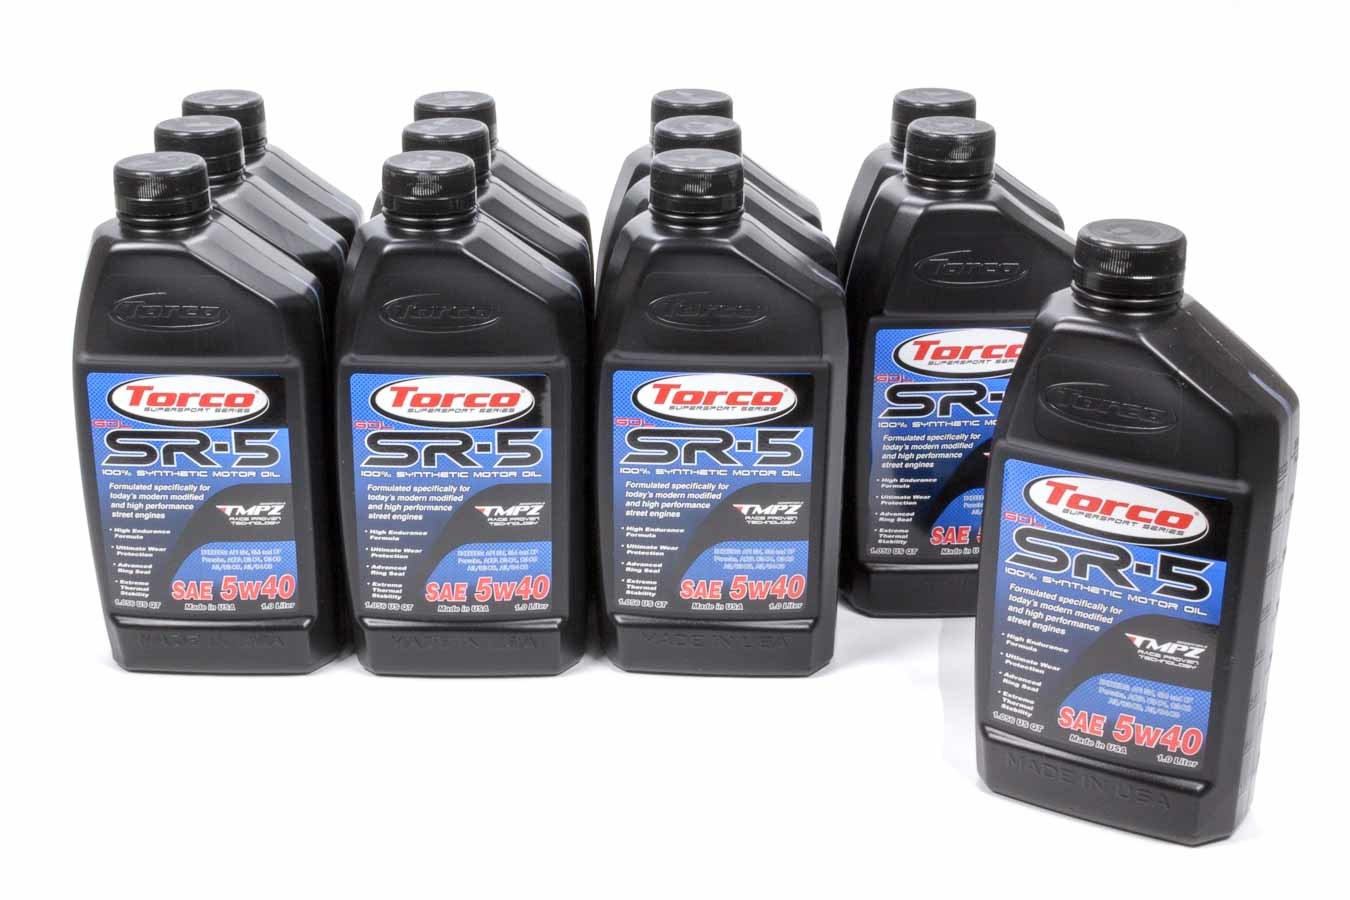 TORCO A150544C SR-5 GDL Synthetic Motor Oil 5w40 Case 12x1-Liter